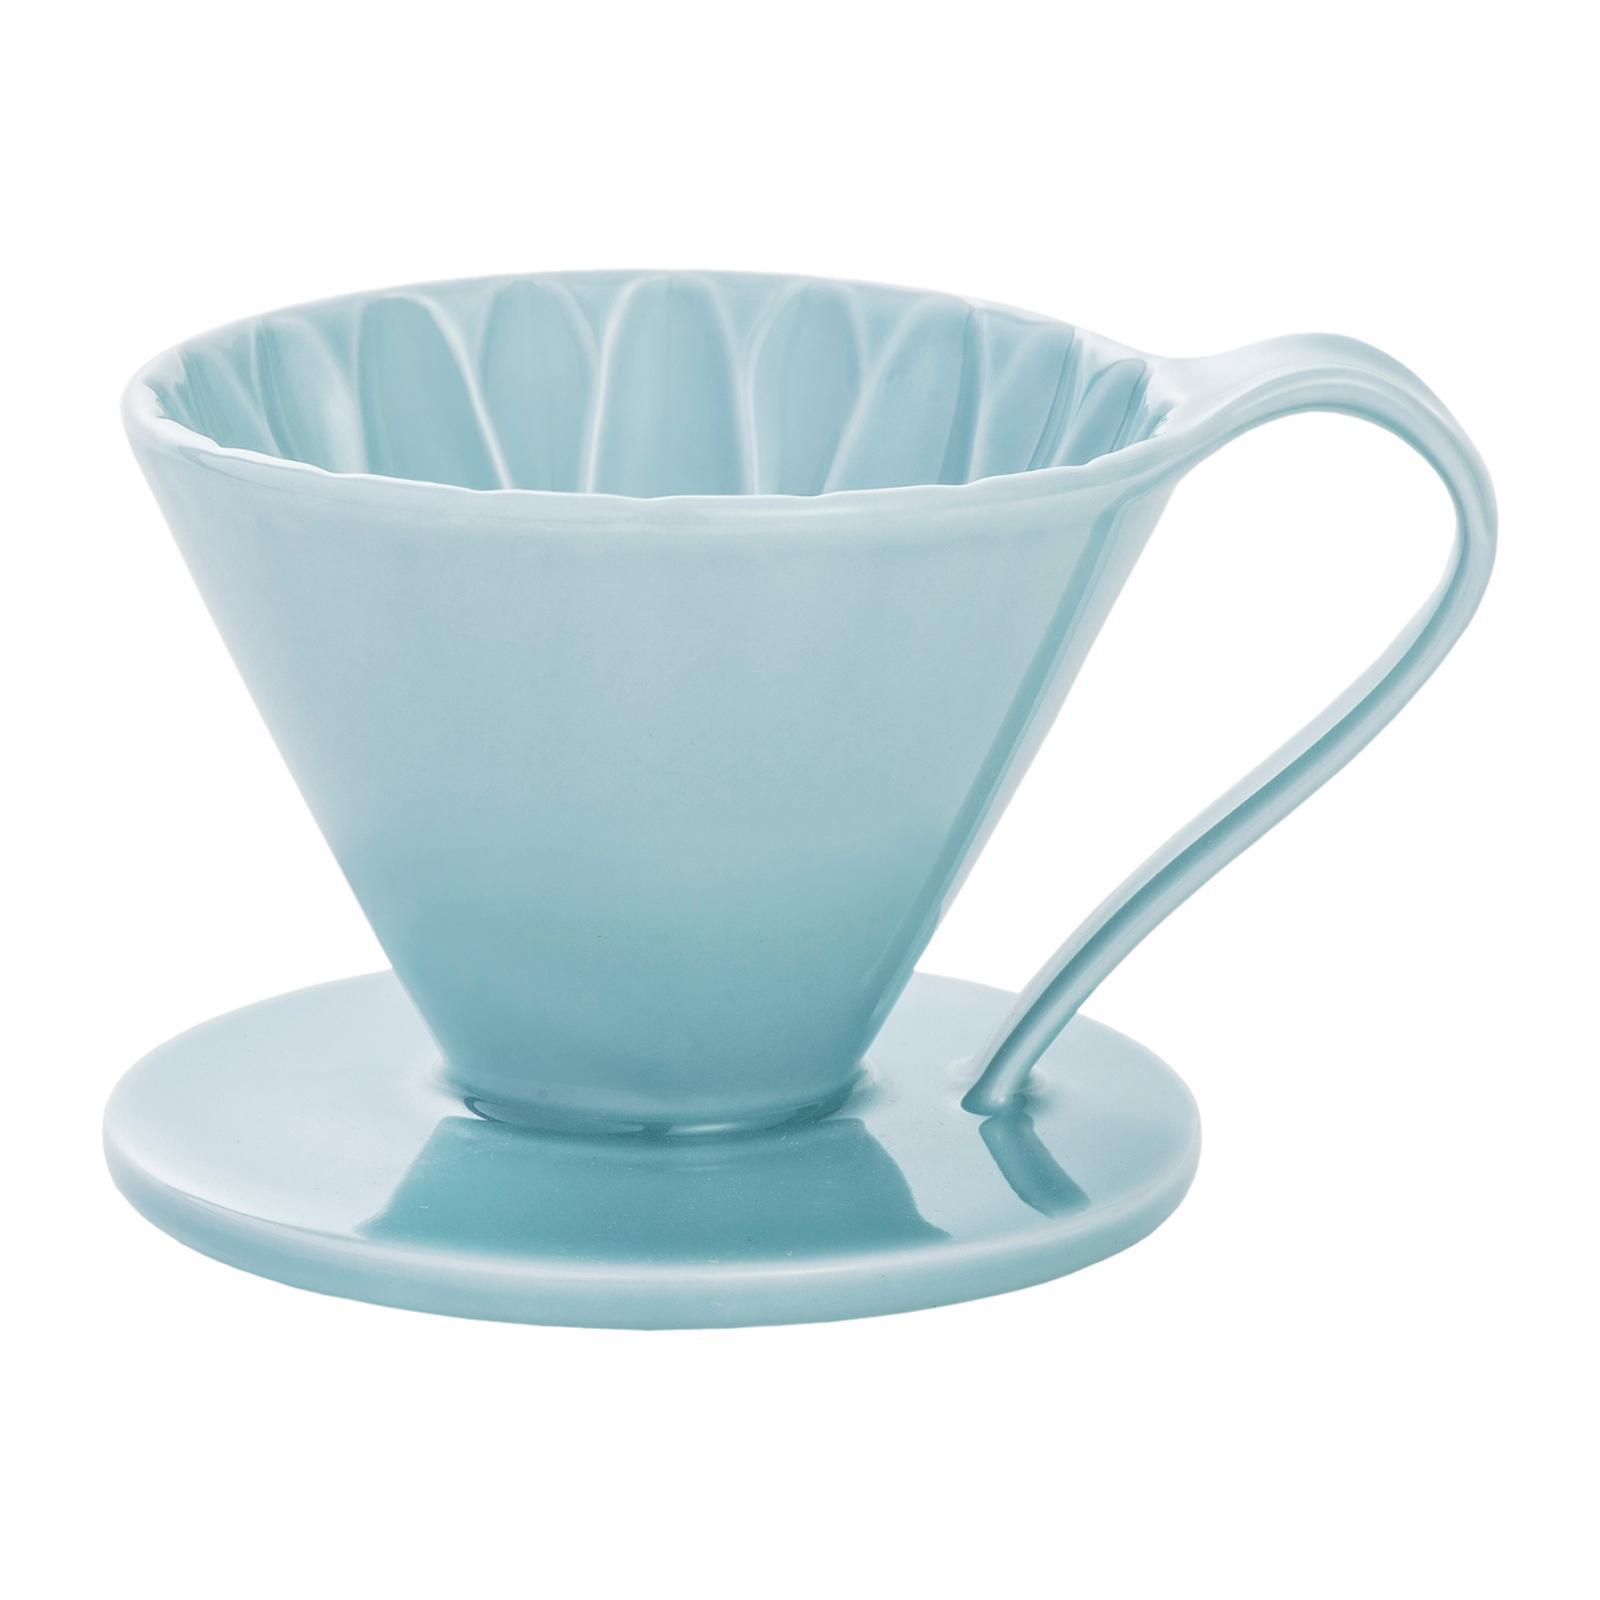 CAFEC Cone-shaped Flower Dripper (Blue) for 2-4 Cups